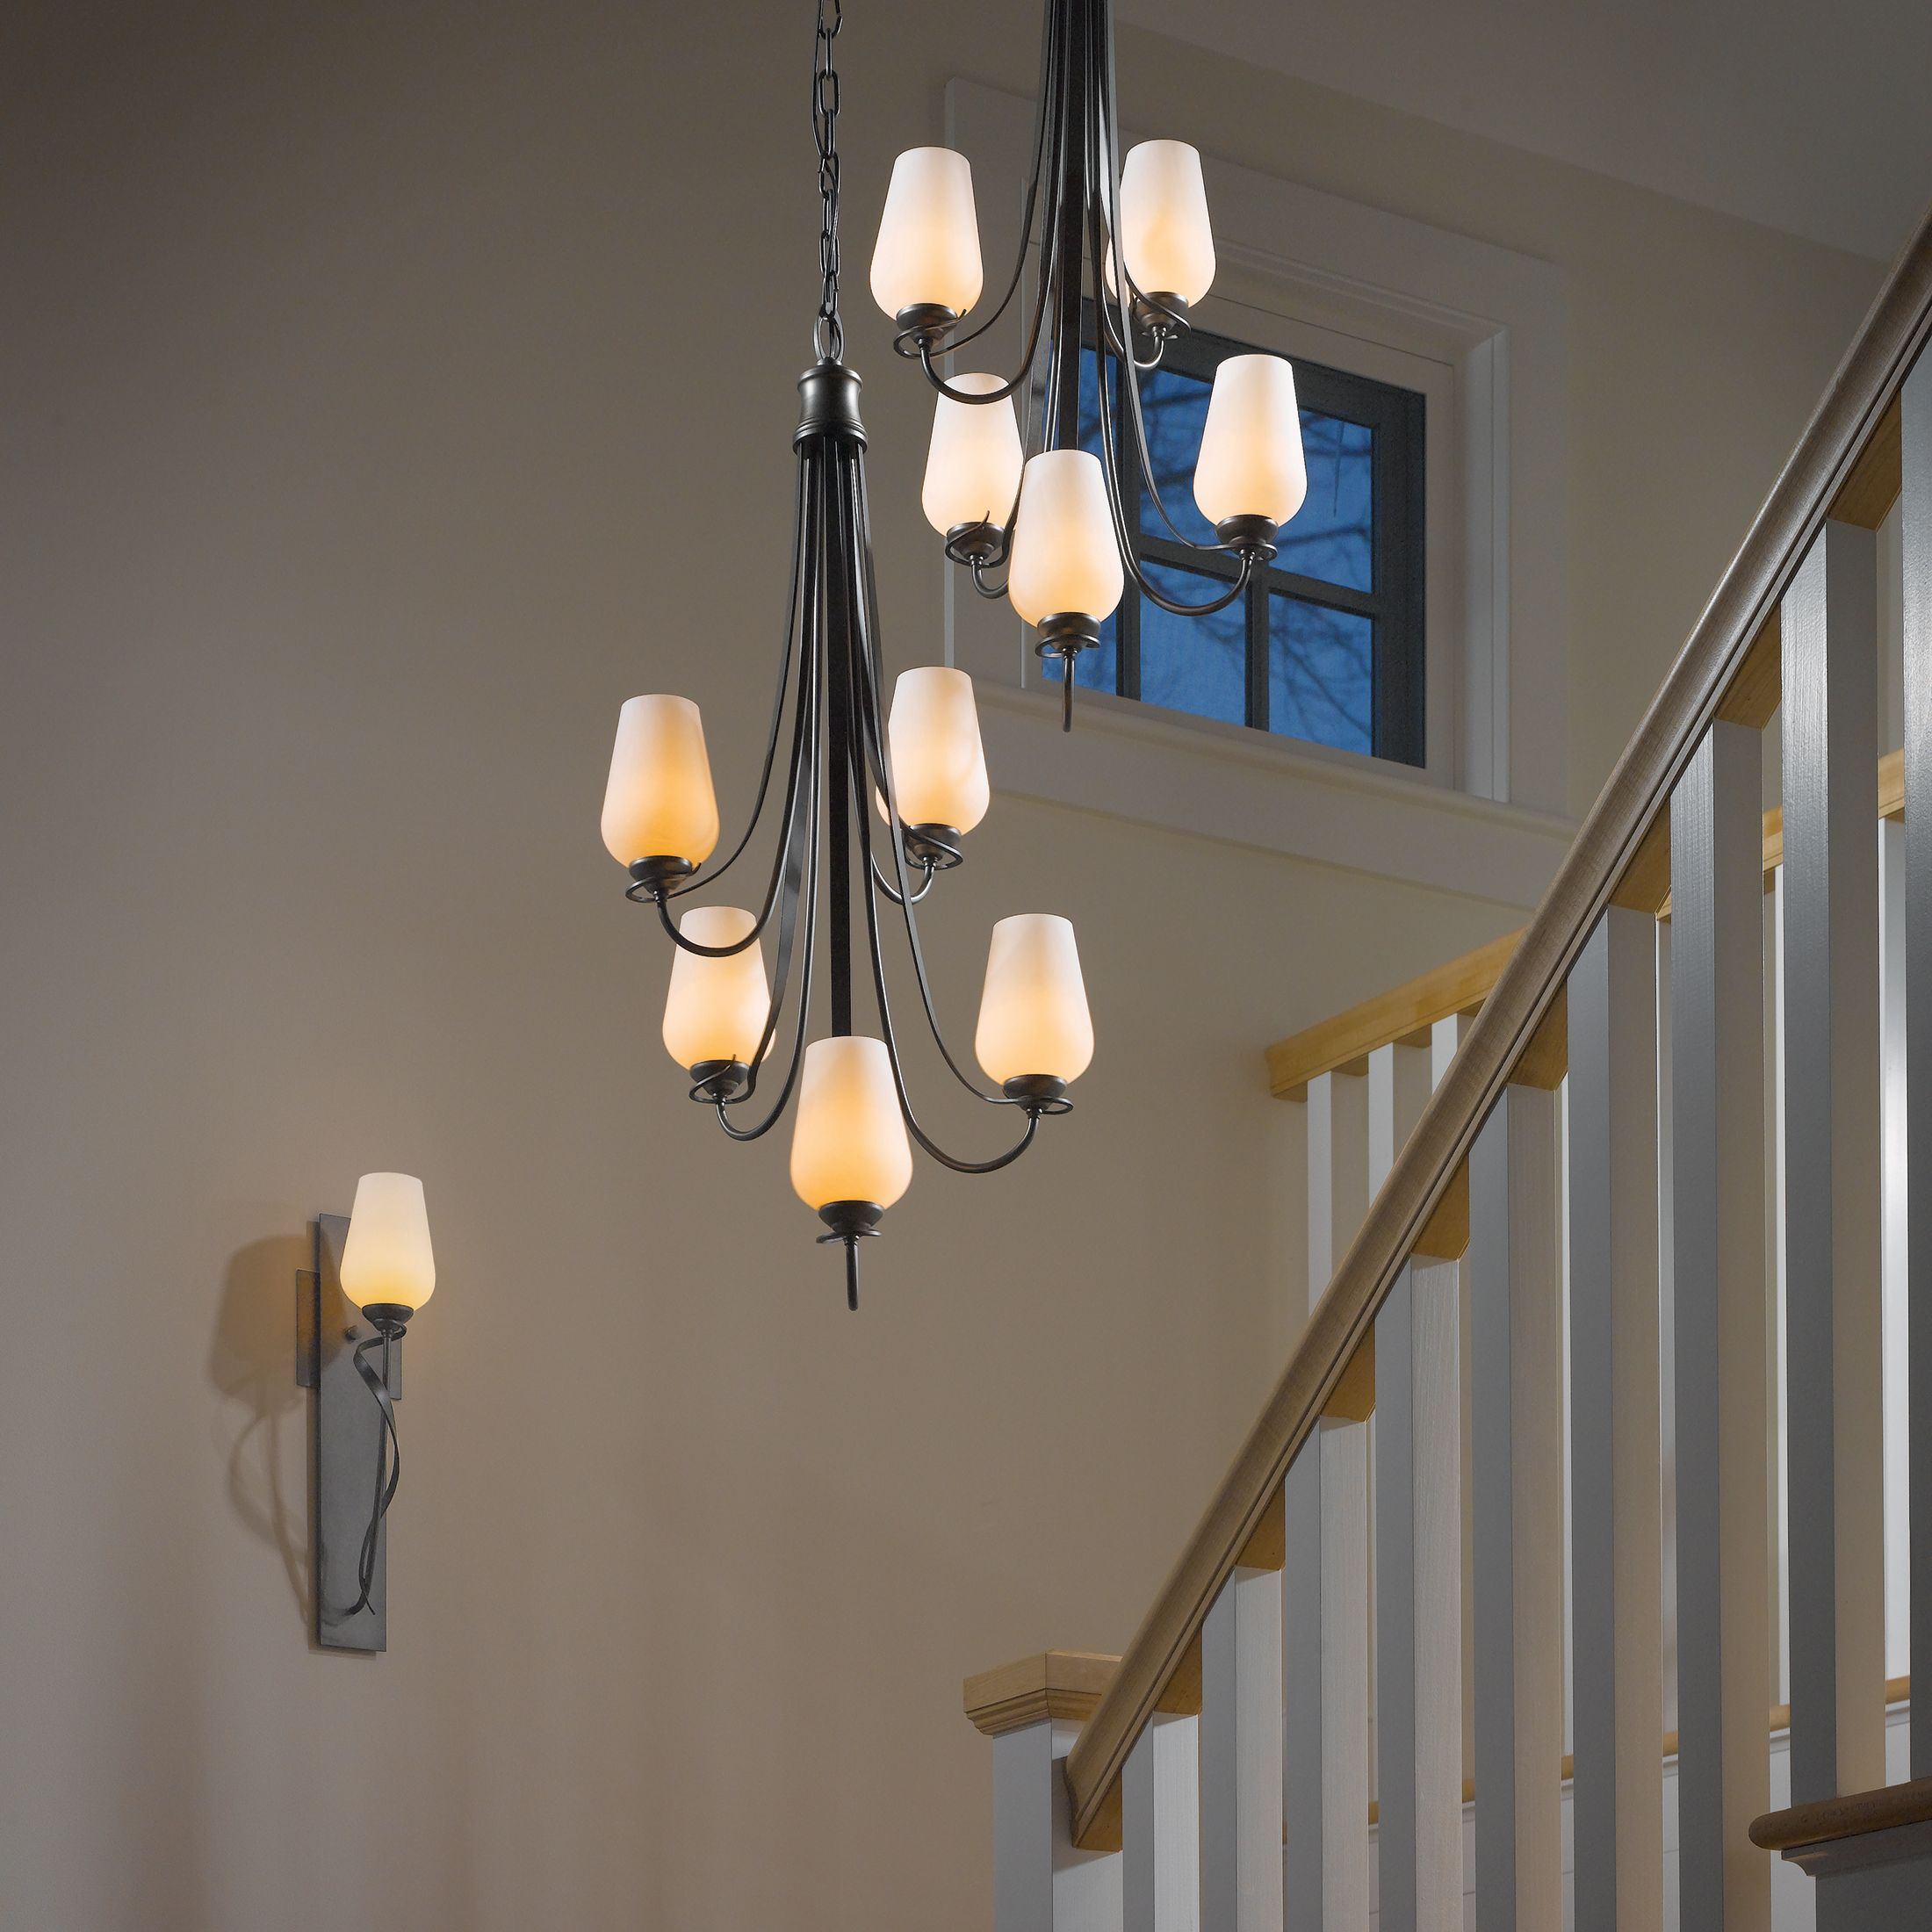 Flora 5 arm chandelier hubbardton forge aloadofball Image collections